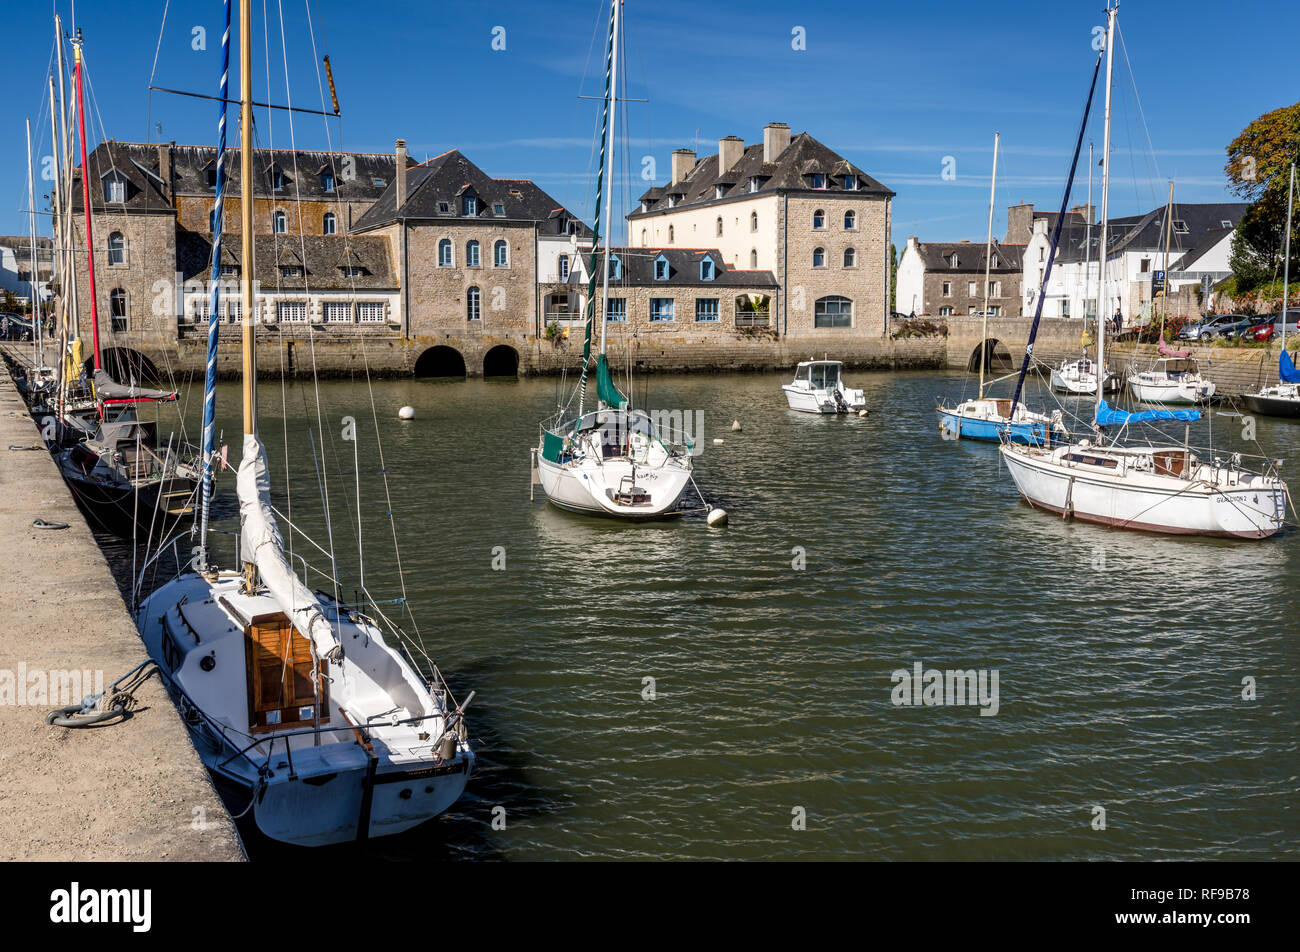 Boat Moorings at Pont-L'Abbe, Brittany - Stock Image